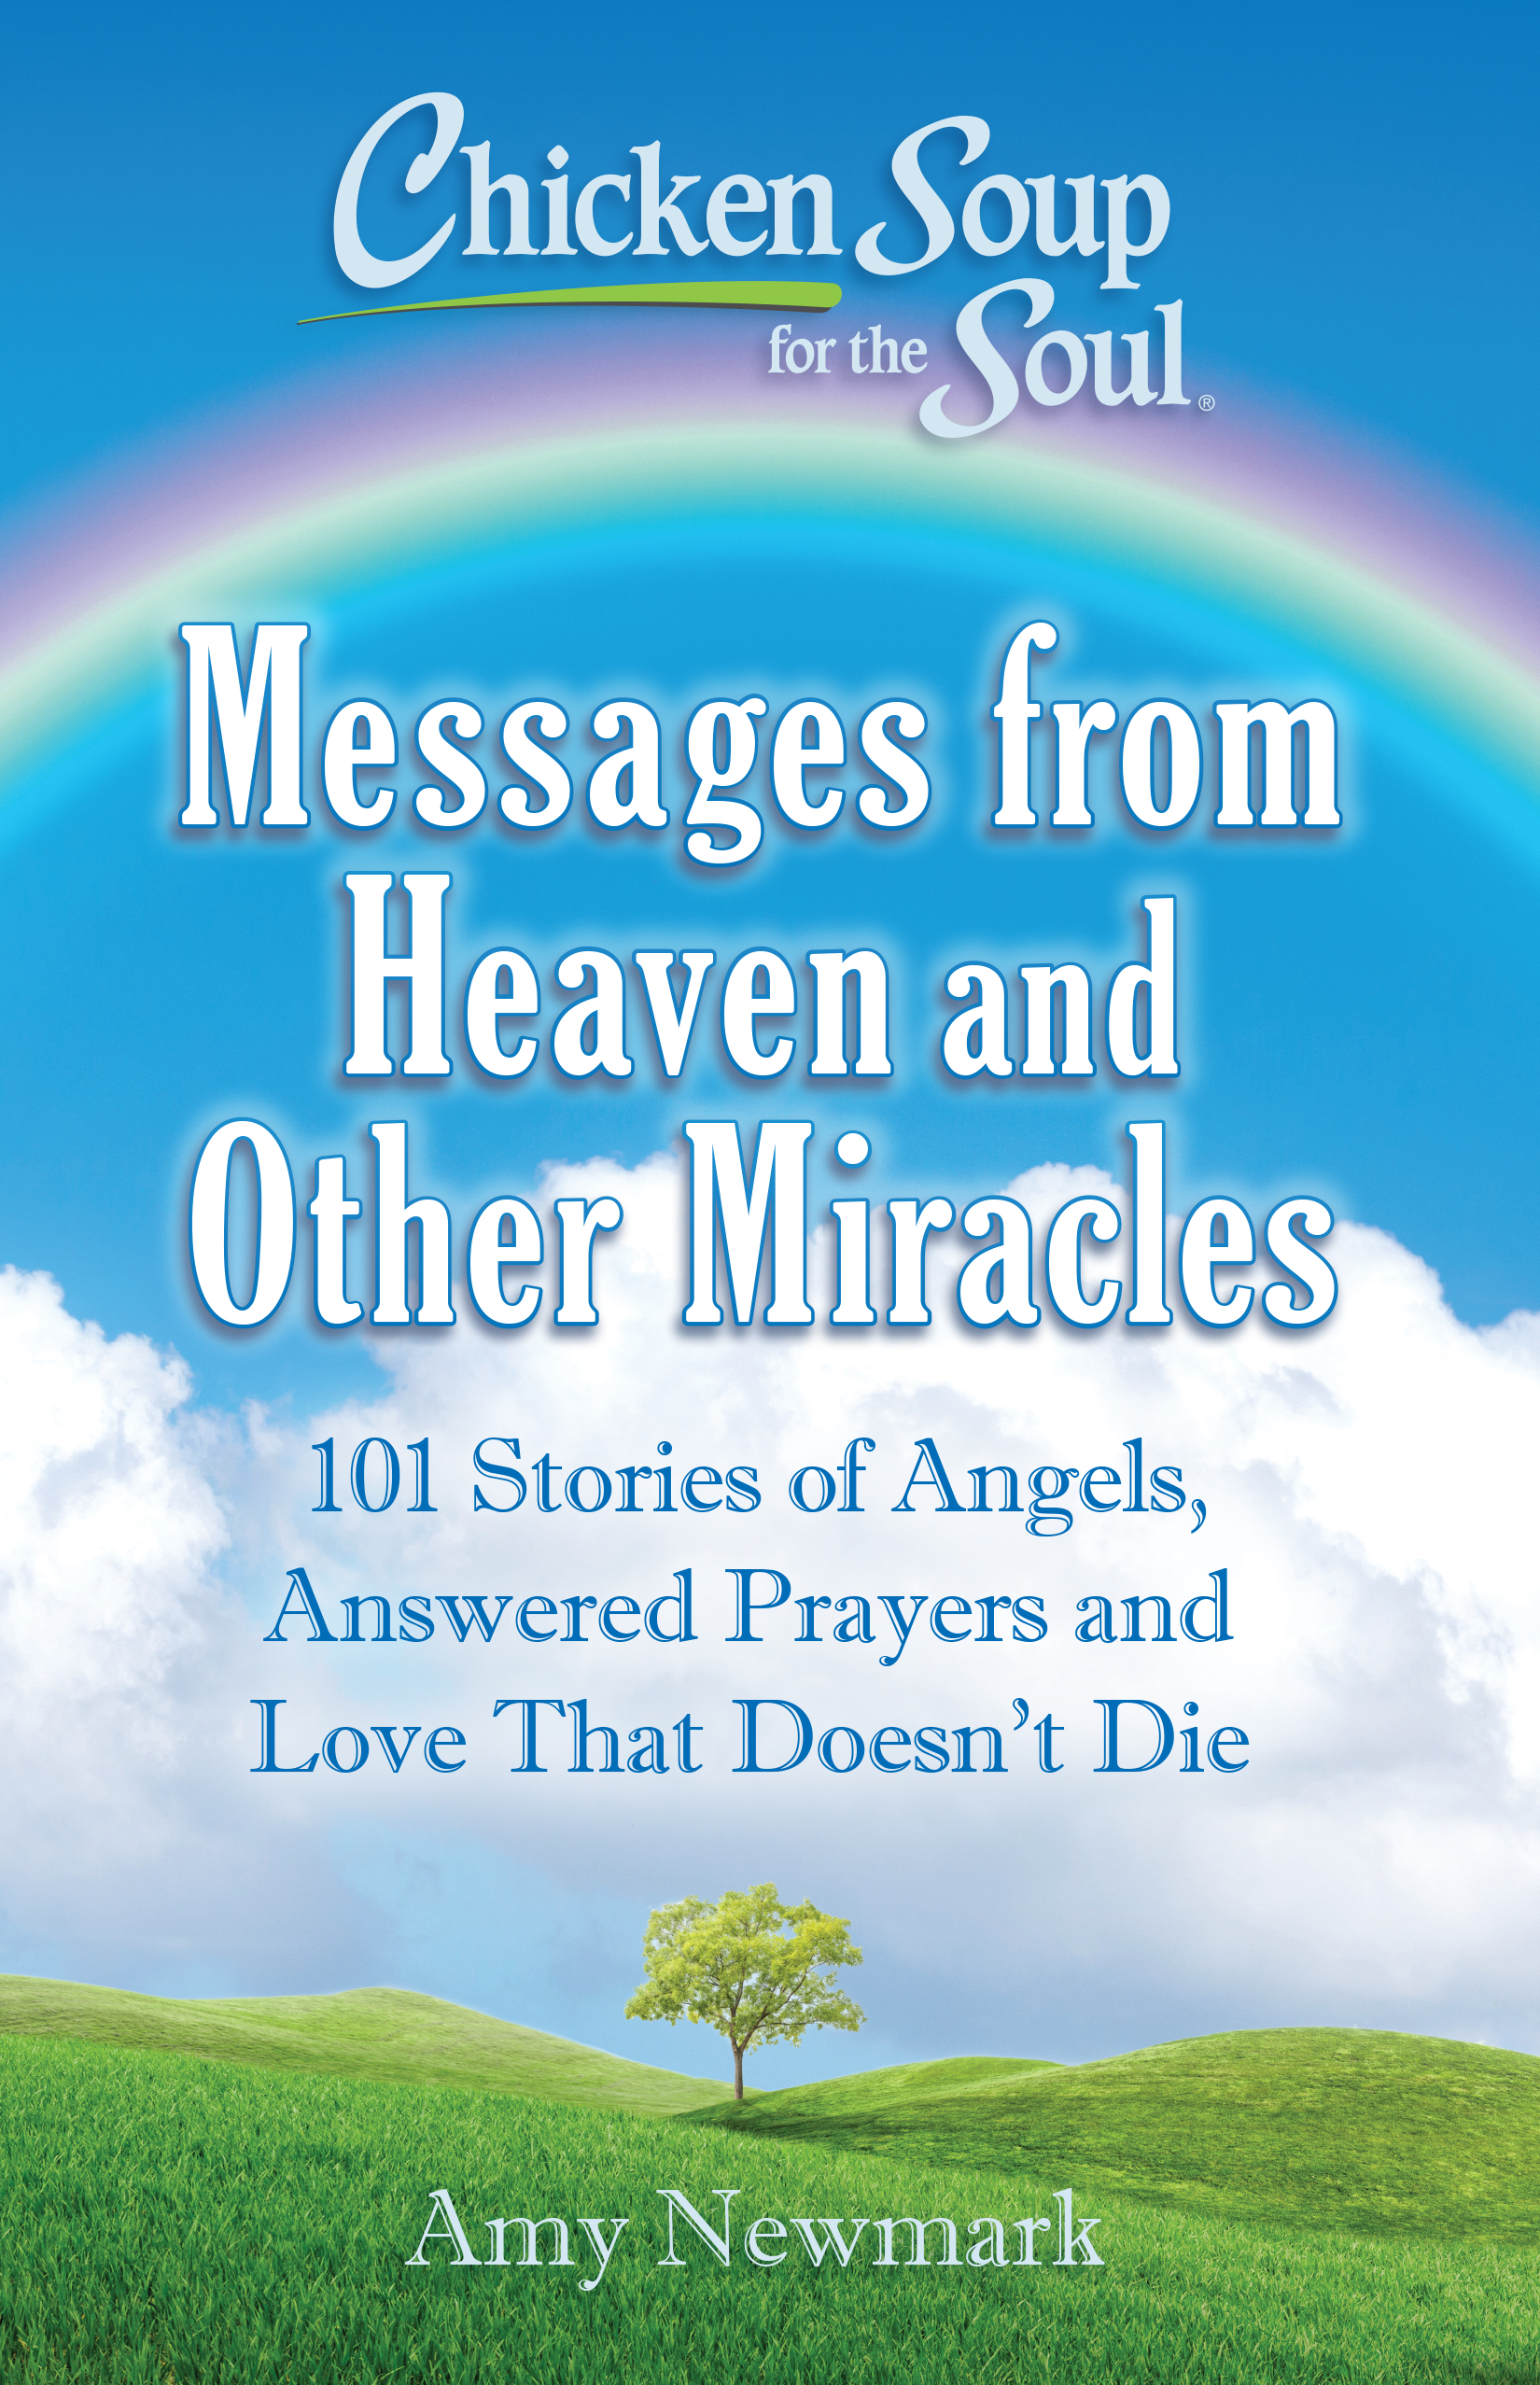 Measages from Heaven and Other Miracles Cover 11.7.18.jpg